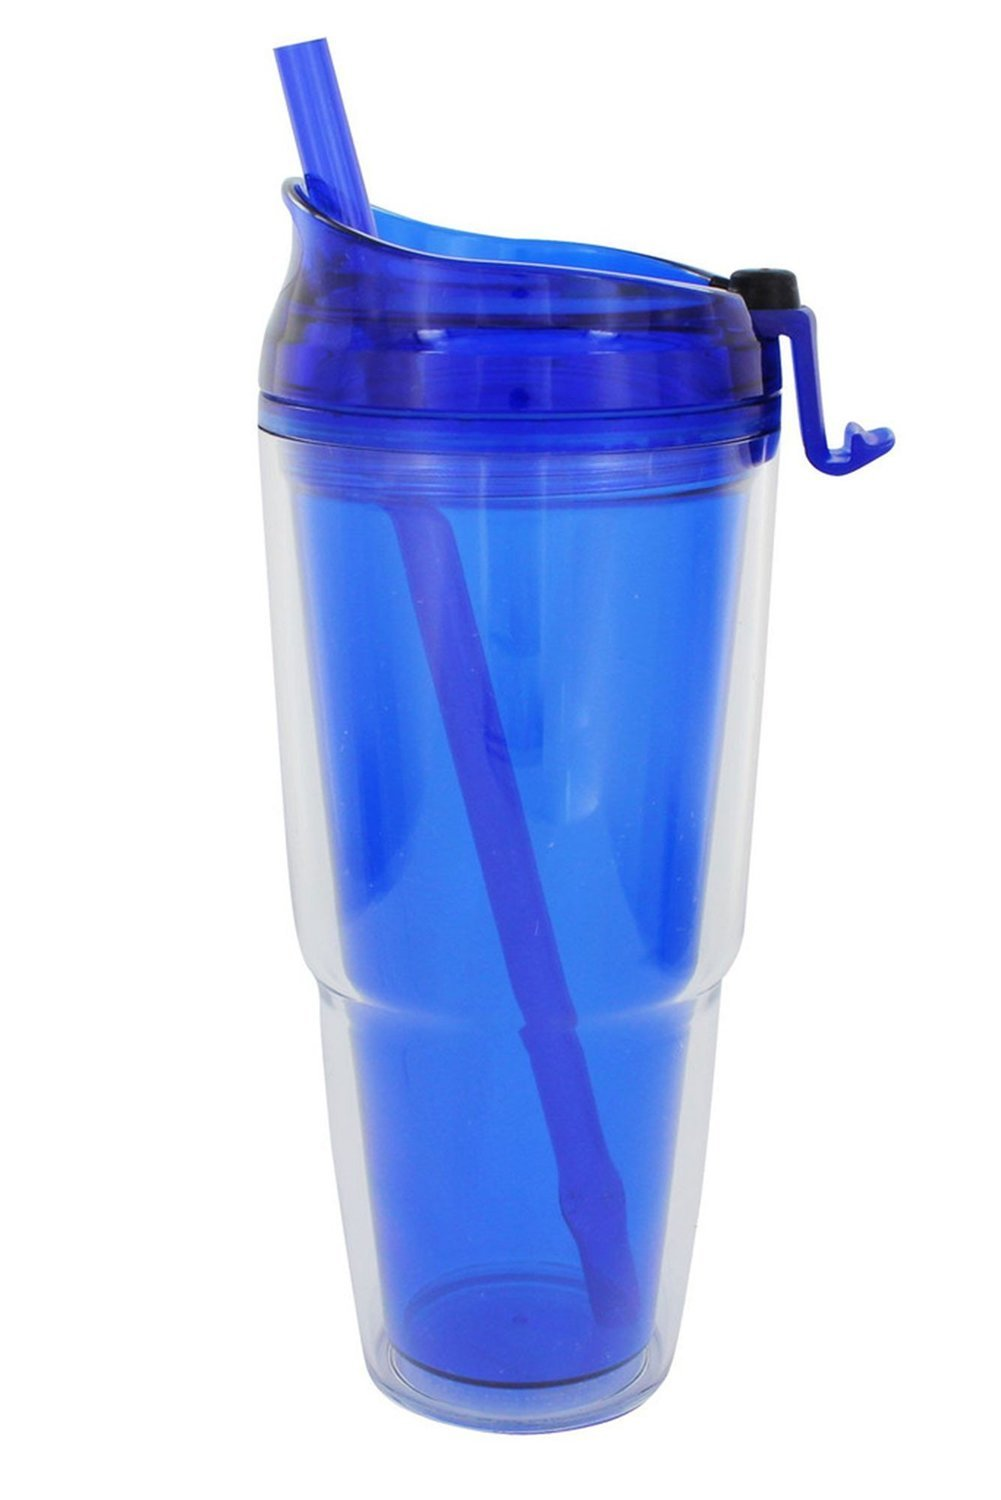 BLUE 22 OZ. DOUBLE WALL TRAVEL TUMBLER WITH STRAW